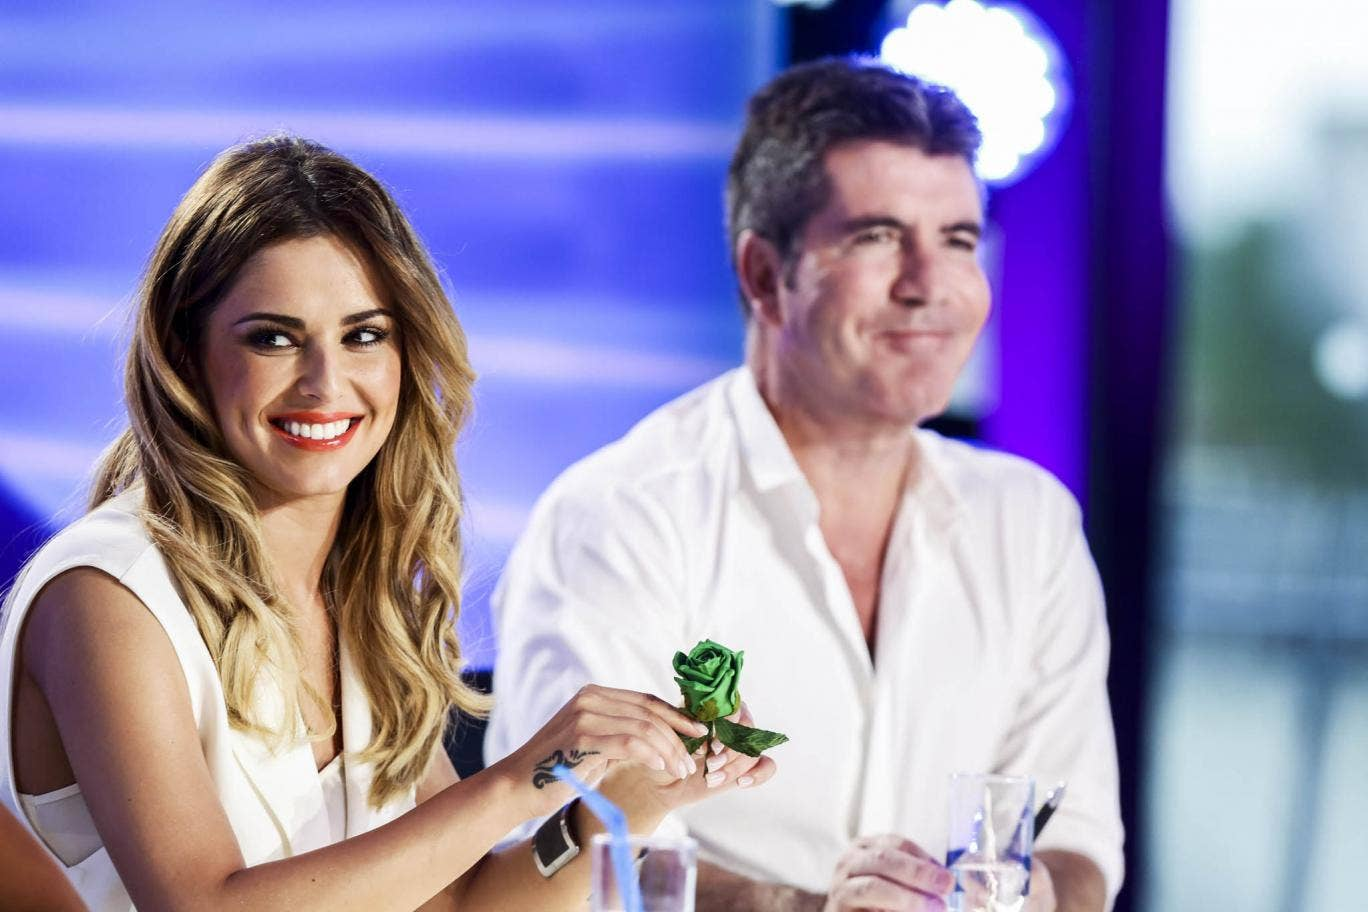 The X Factor only exists on the judging panel